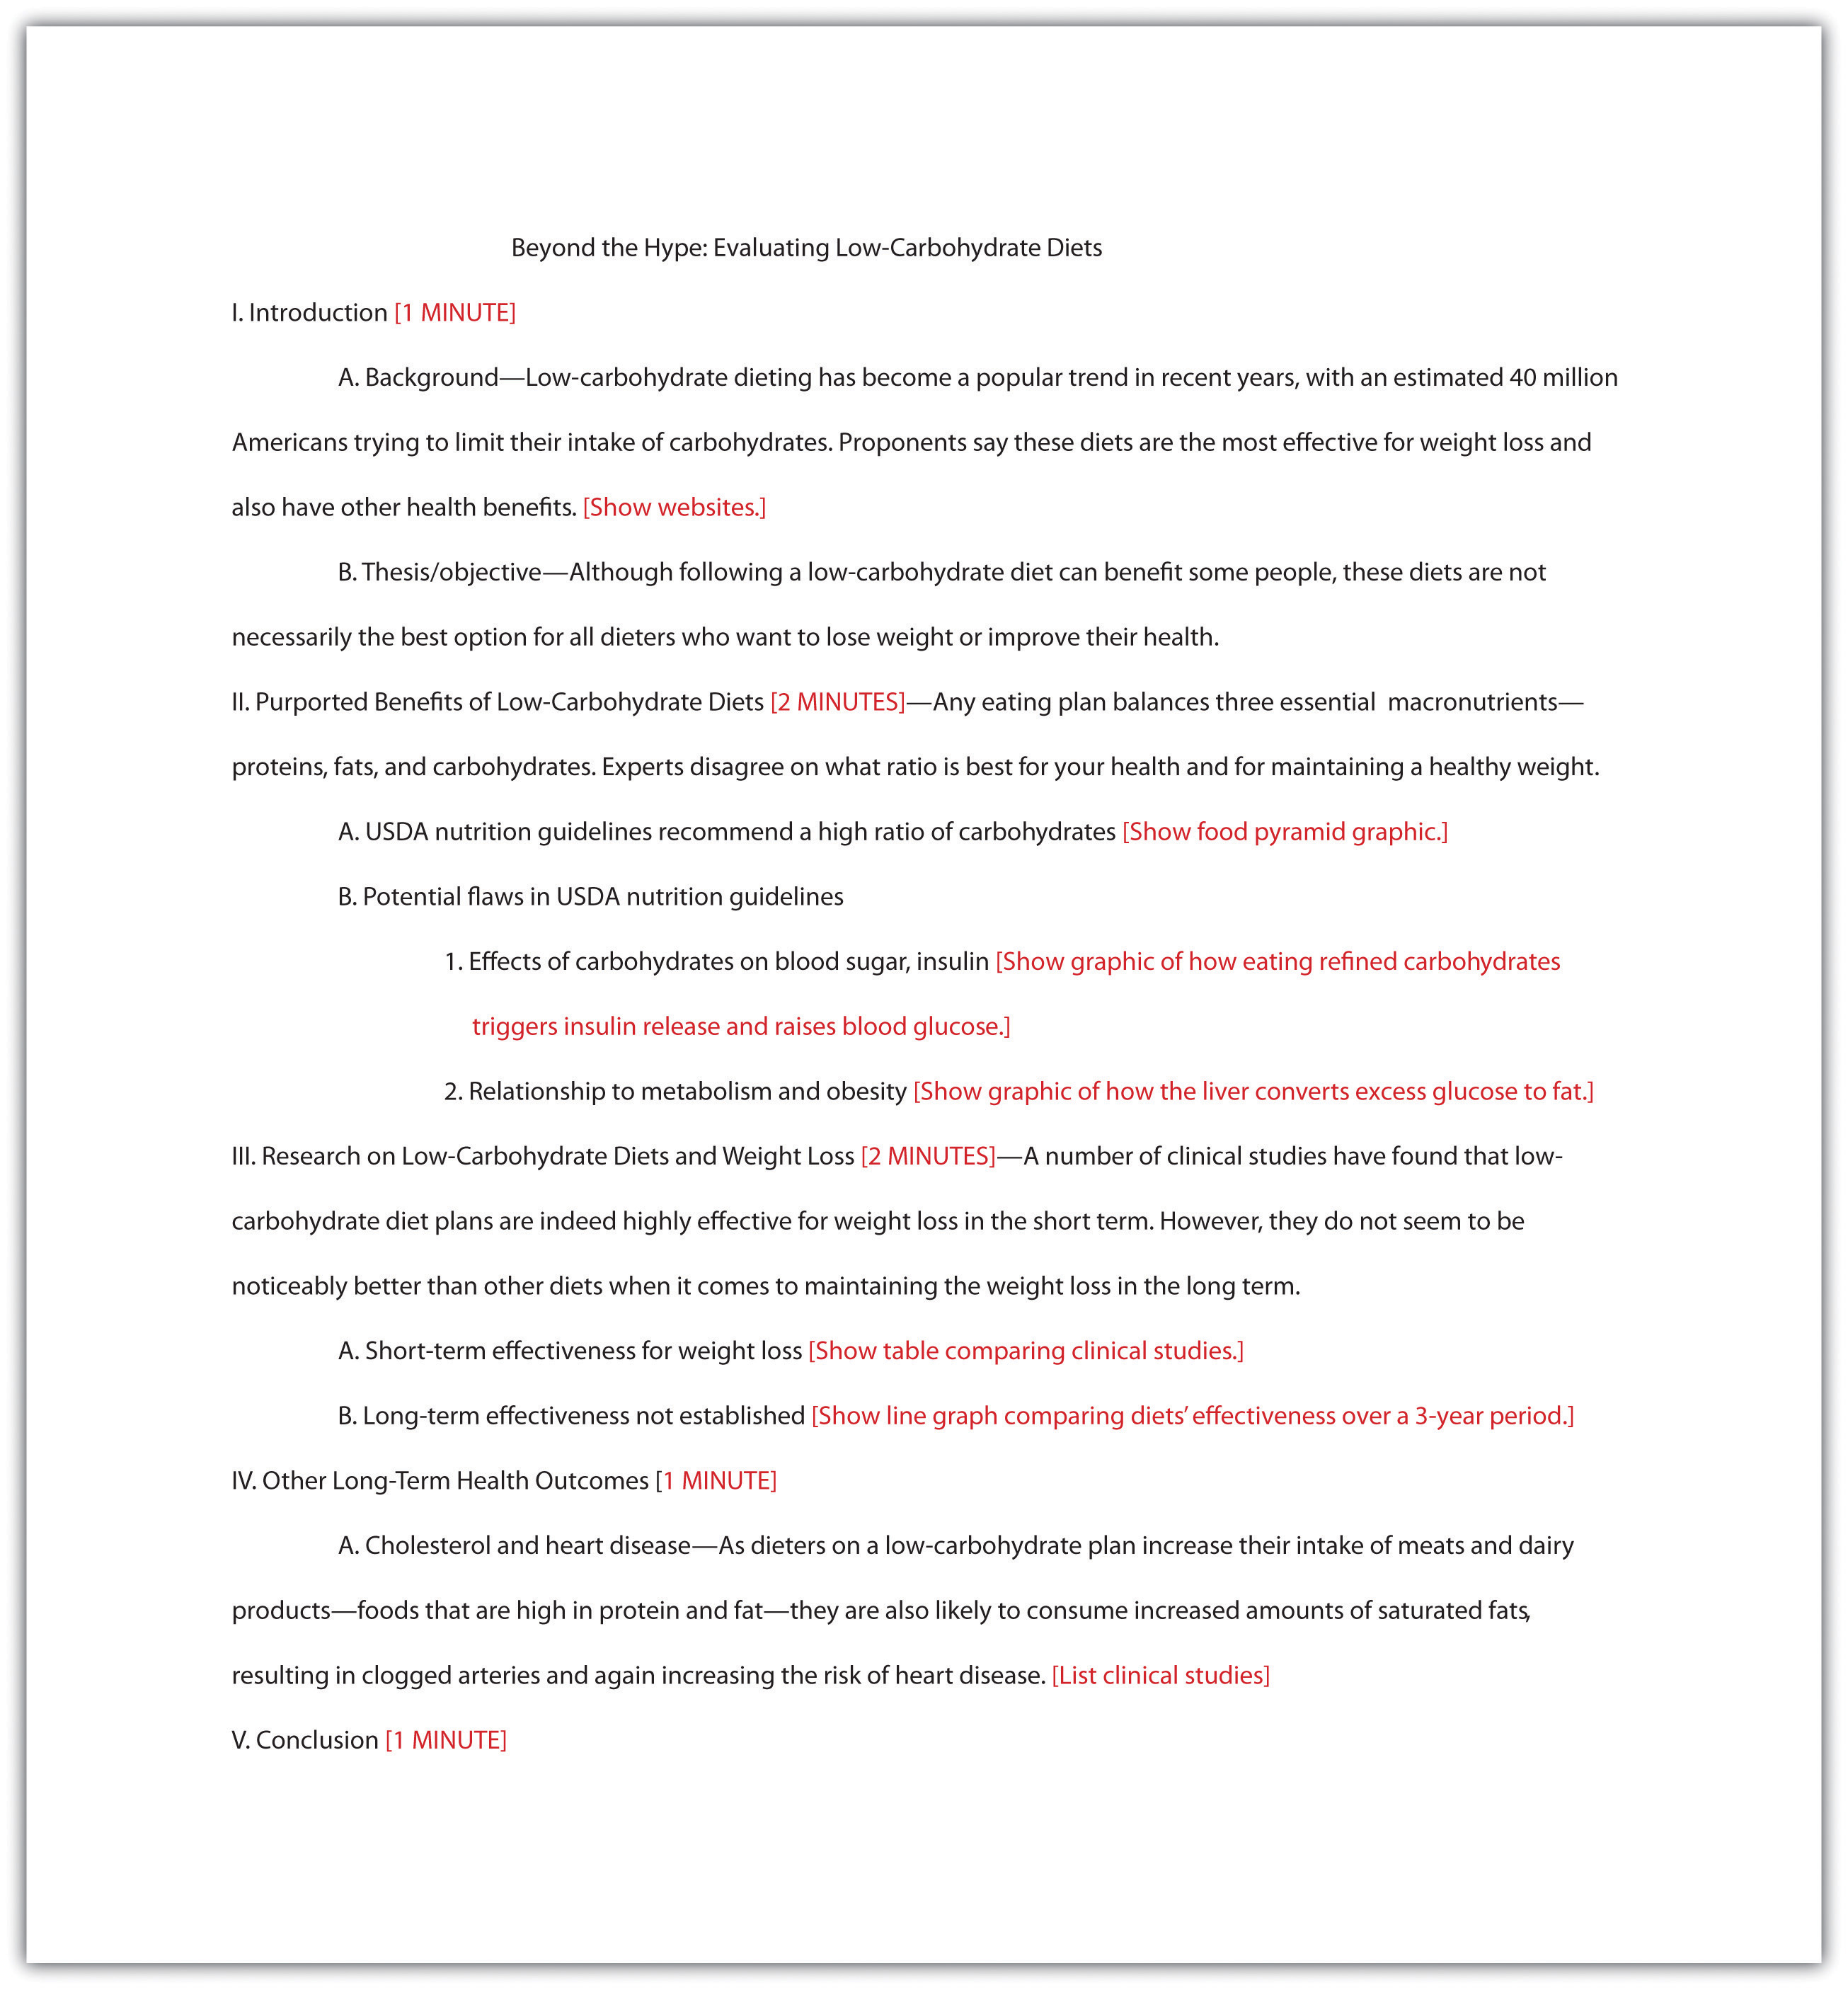 descriptive essays about a person descriptive essay about a person physical appearance of an organism influential essays most influential person in